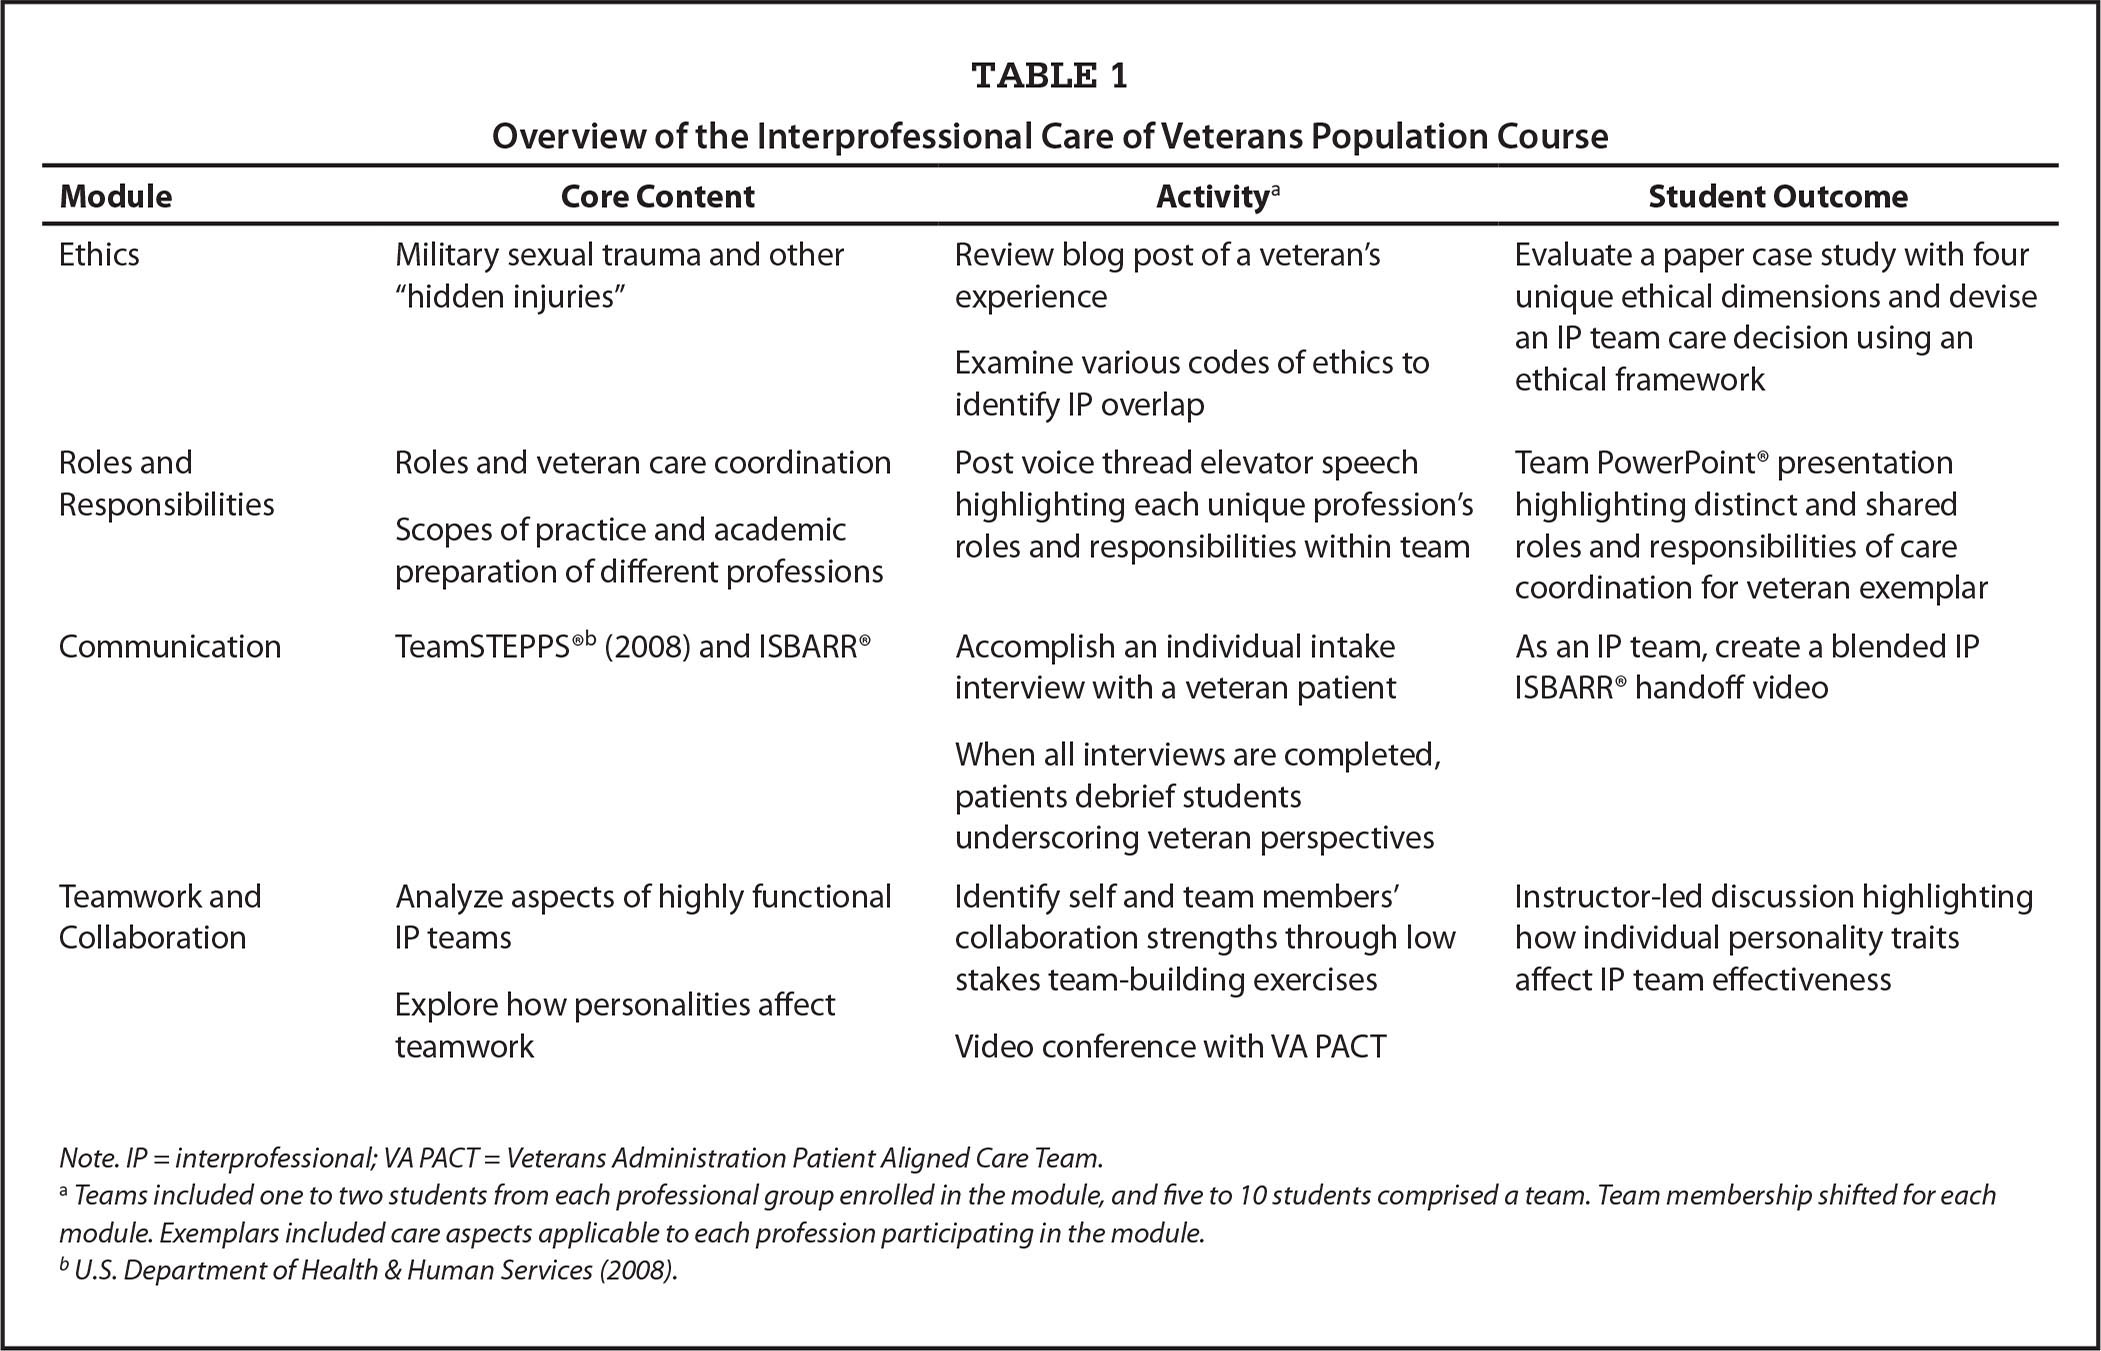 Overview of the Interprofessional Care of Veterans Population Course